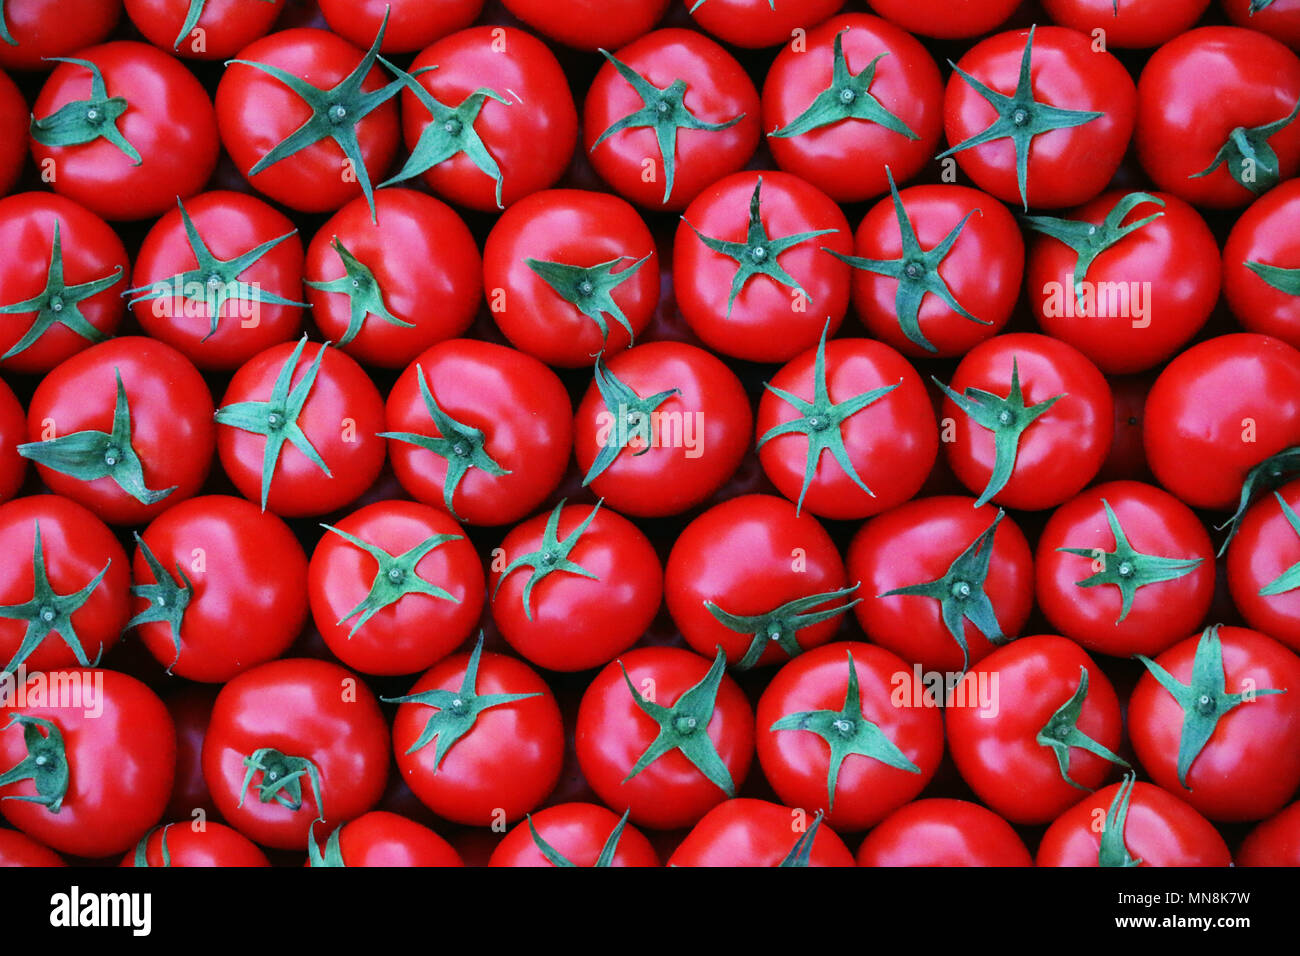 Group of fresh hungarian red tomatoes from the green grocery marketplace. Very tasty and always fresh and healthy vegan food. - Stock Image